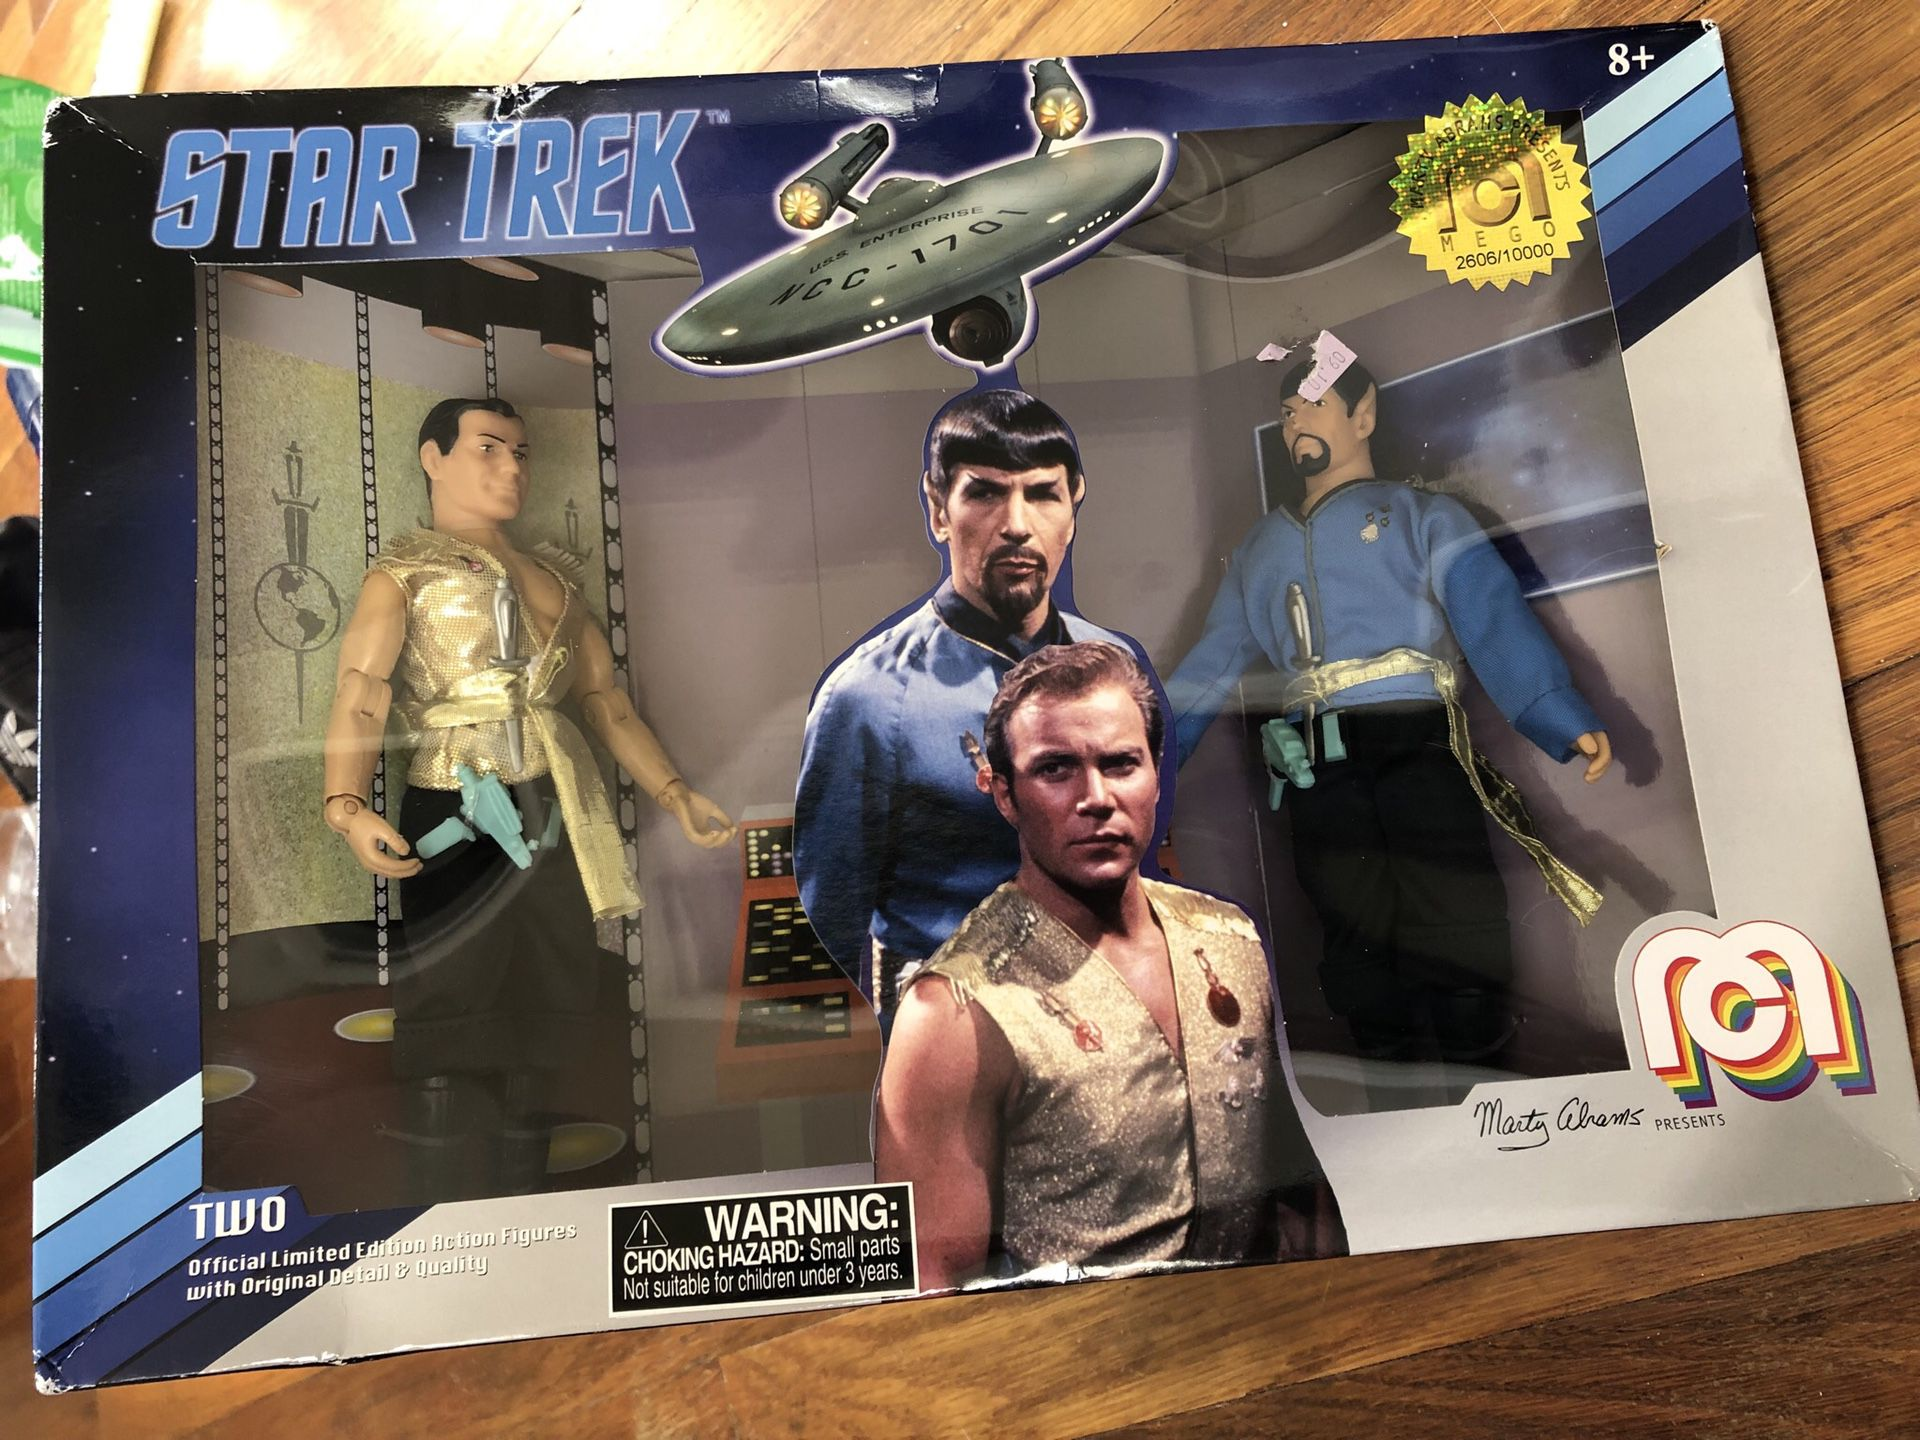 Star Trek limited edition action figures